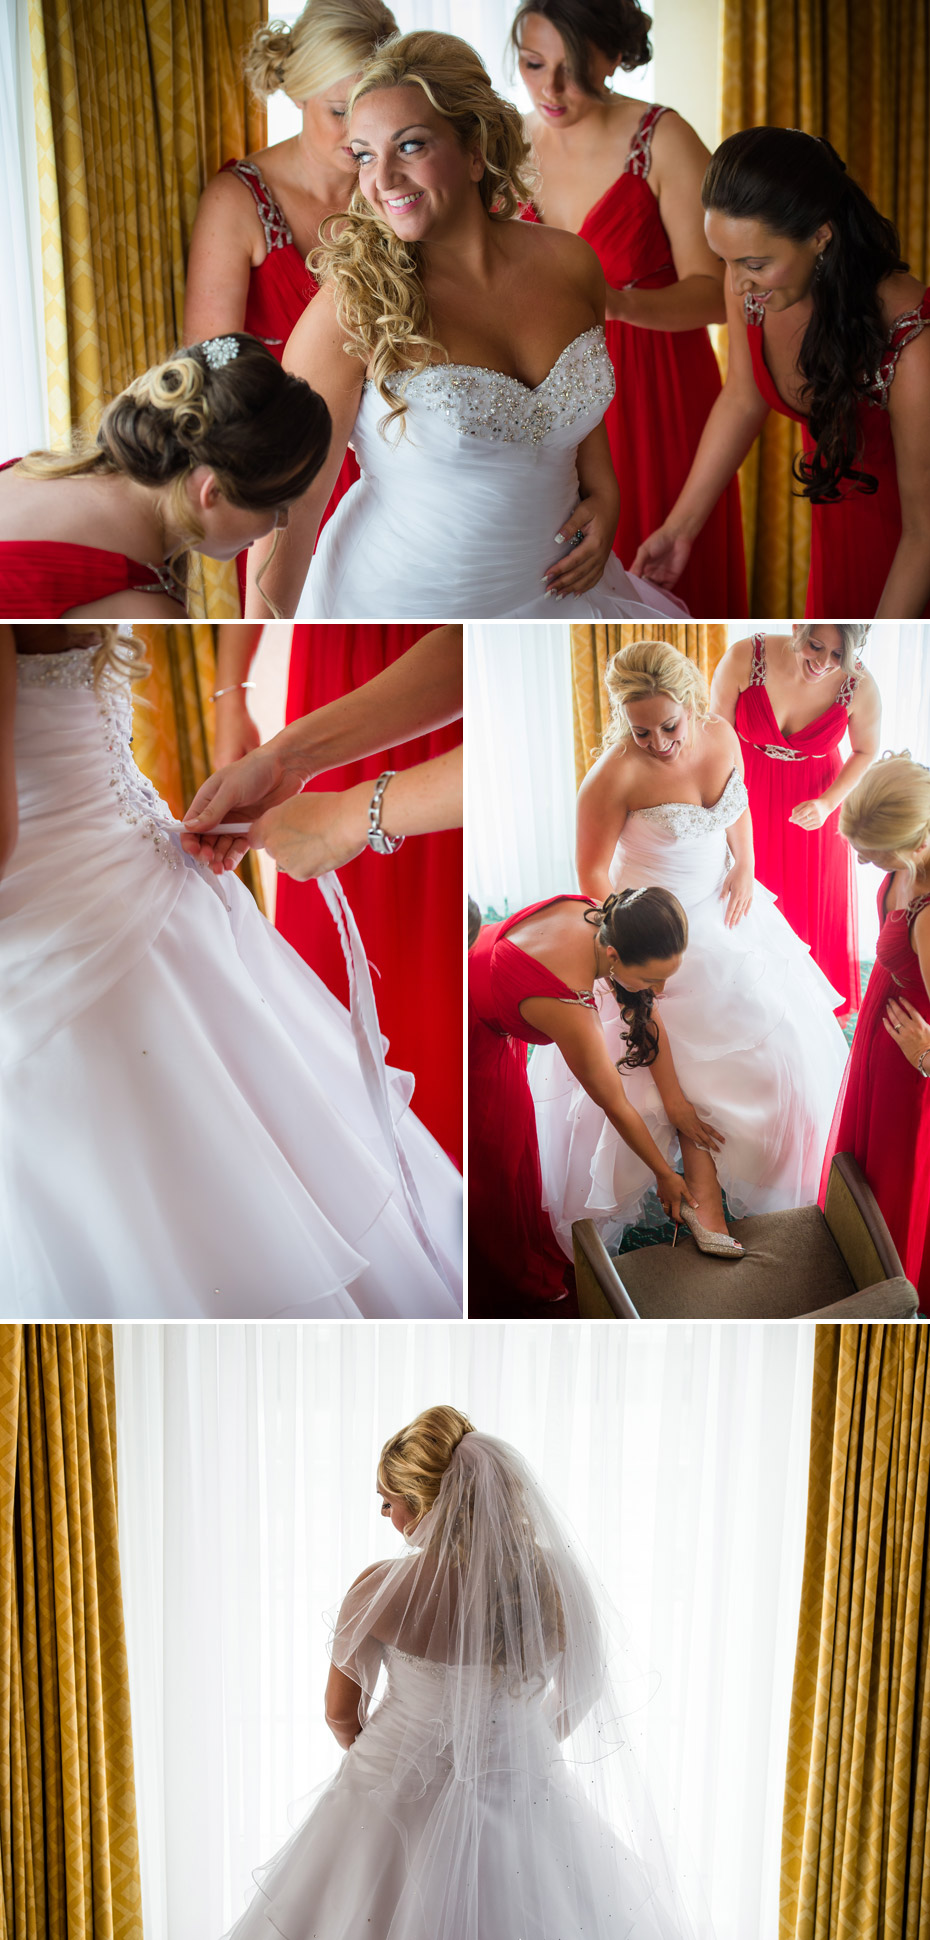 wedding-photographs-crowne-plaza-speke-liverpool-003